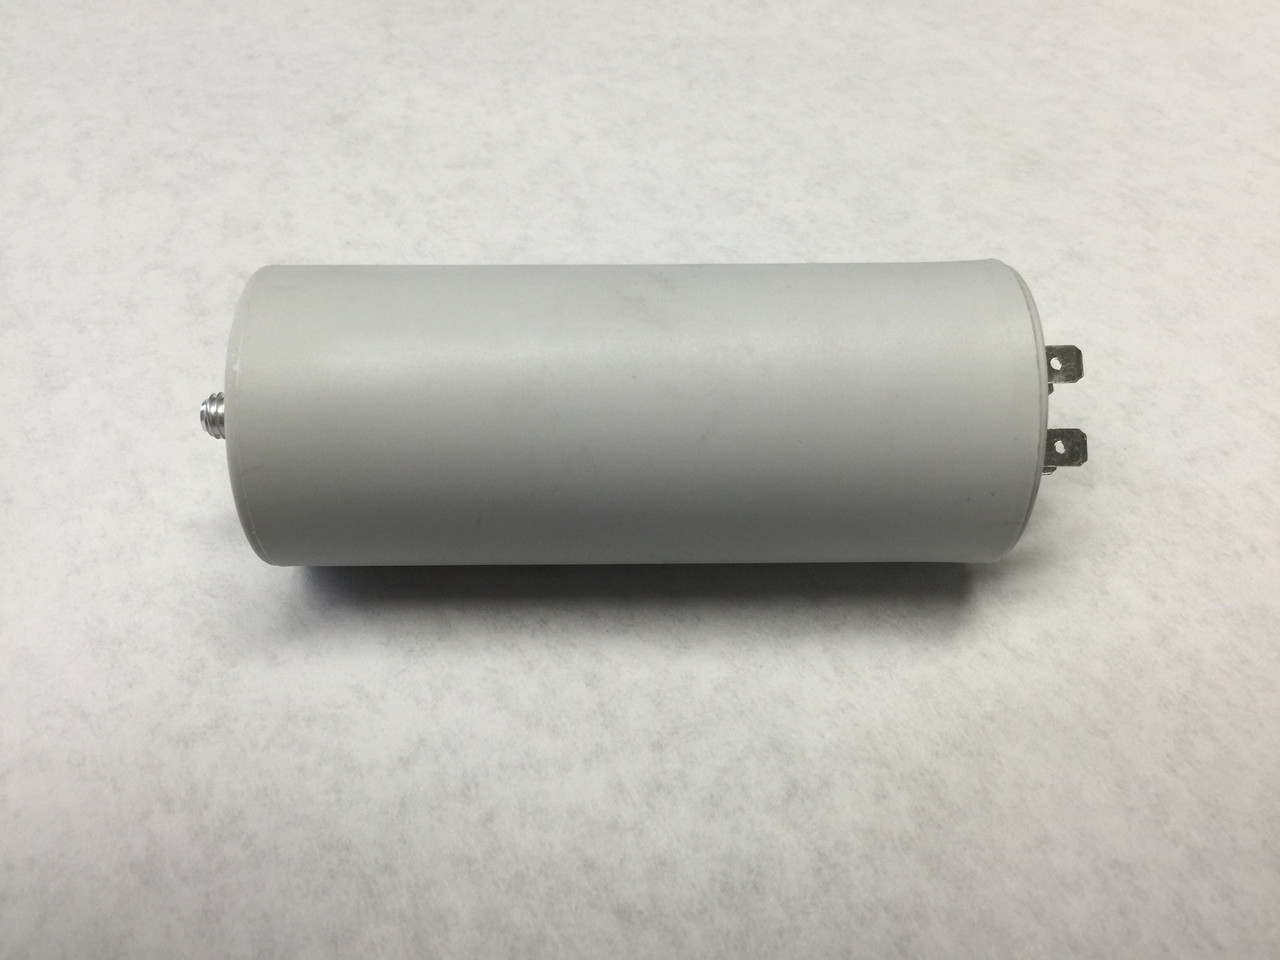 Talsa H-999 - H Series -- Capacitor for 110 Volt 2.25HP Motor